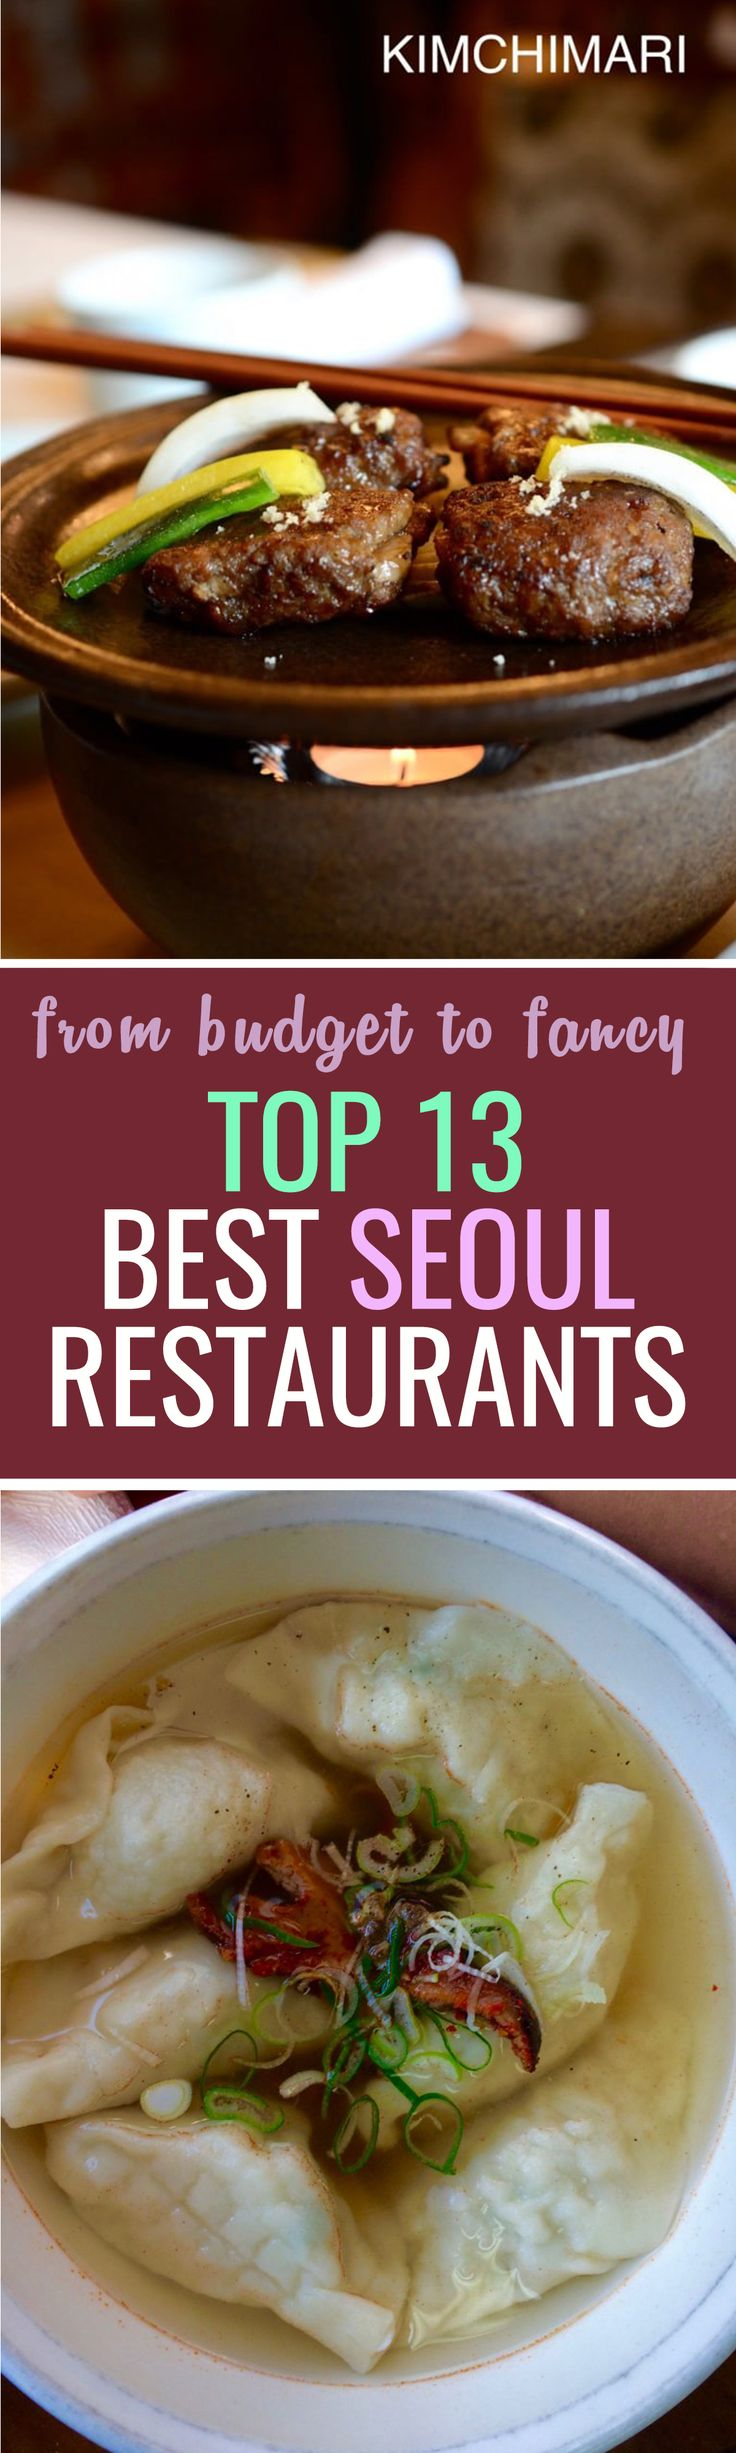 Are you traveling to Seoul this year? Here is a list of my favourite restaurants that are recommended by the Micheline food guide !